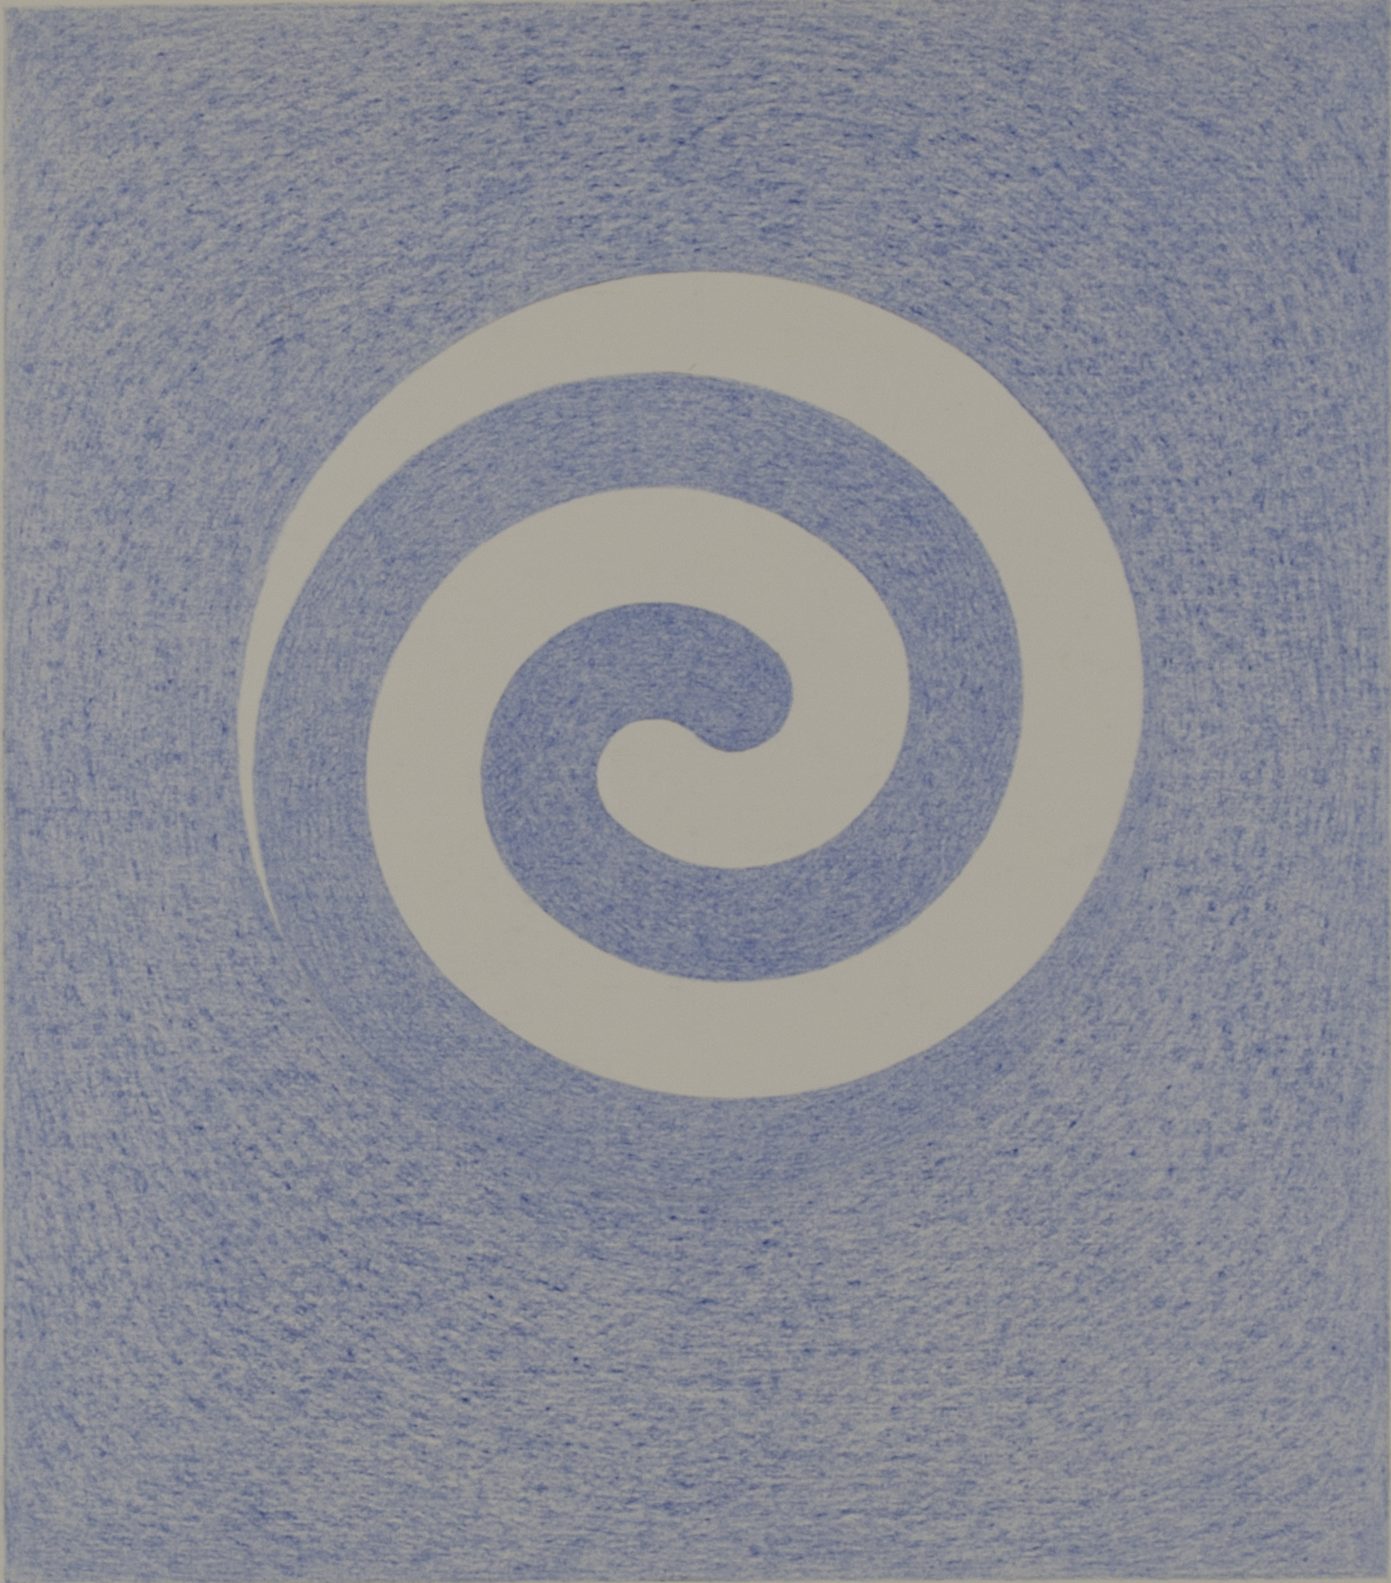 "SPIRAL HB3T 1983-844 ©  COLOR PENCILS ON PAPER             9"" x 10.5"""